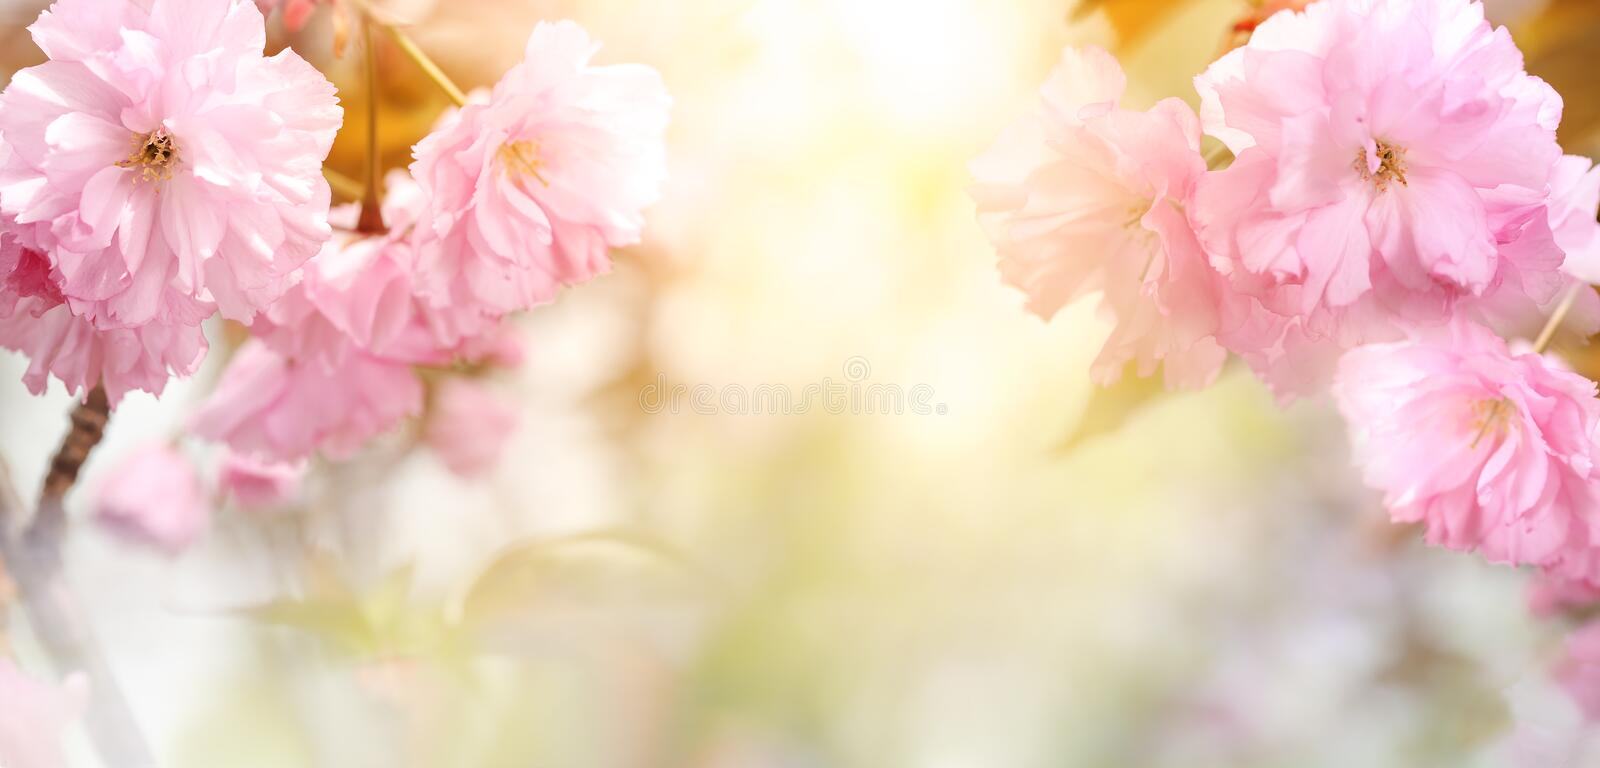 Spring blooming cherry flowers royalty free stock photos